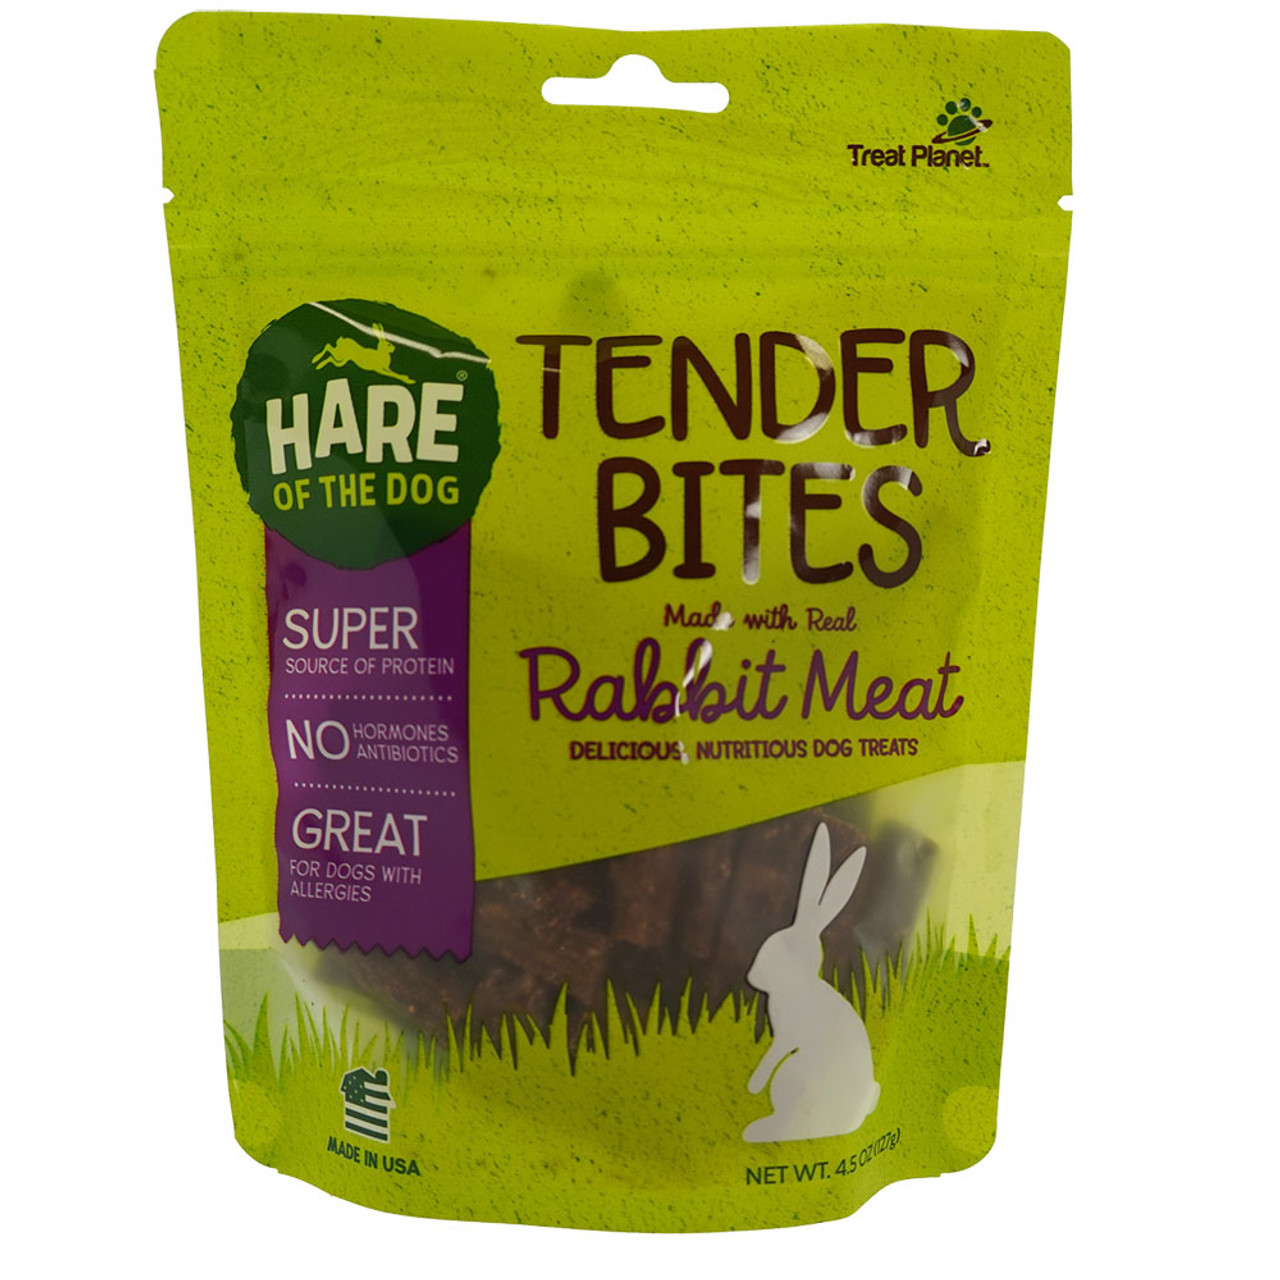 Hare of the Dog Tender Bites Rabbit Meat Dog Treats